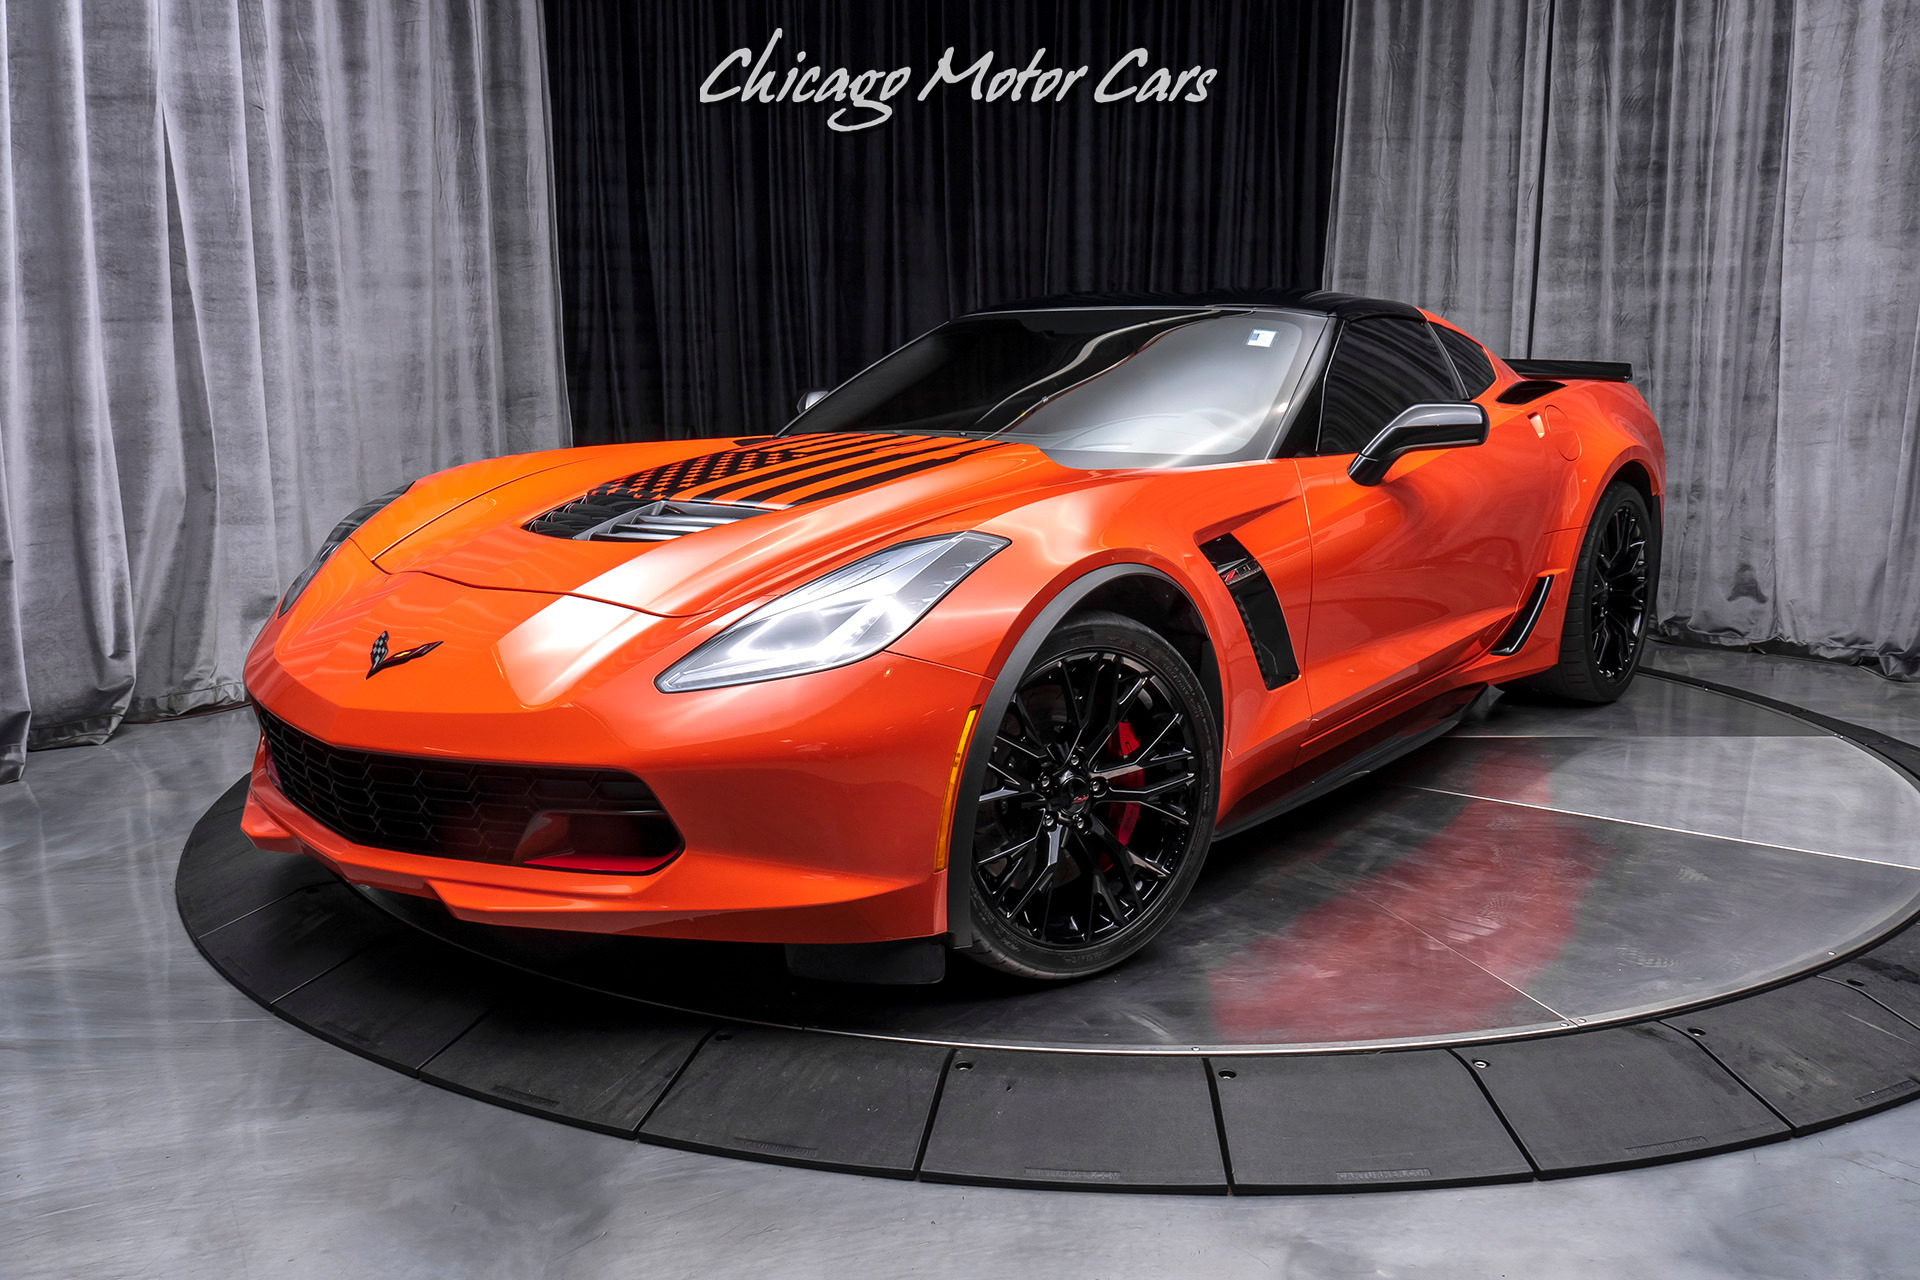 Used 2019 Chevrolet Corvette Z06 Coupe Only 1400 Miles